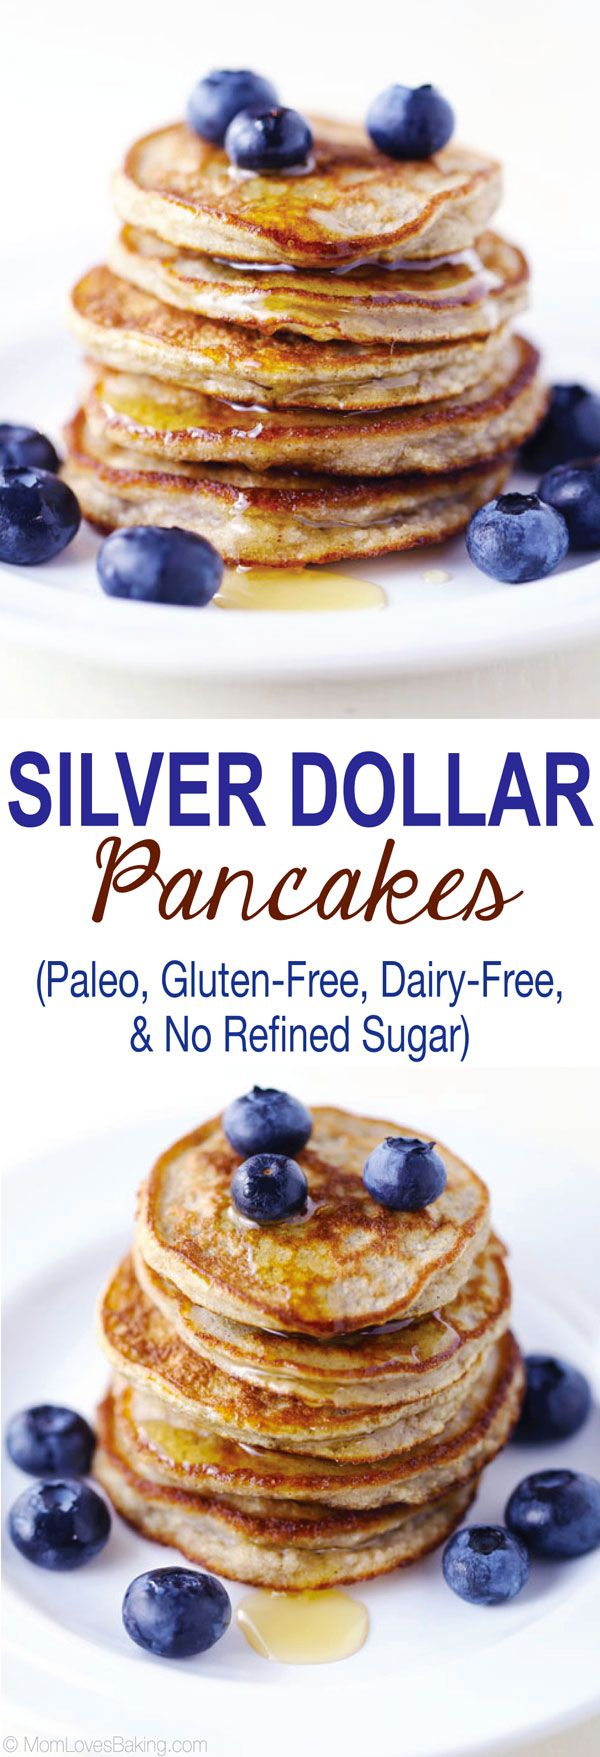 Made with coconut flour, Silver Dollar Pancakes are a delicious Paleo version of the classic breakfast. They're also gluten-free and dairy-free! Recipe on MomLovesBaking.com